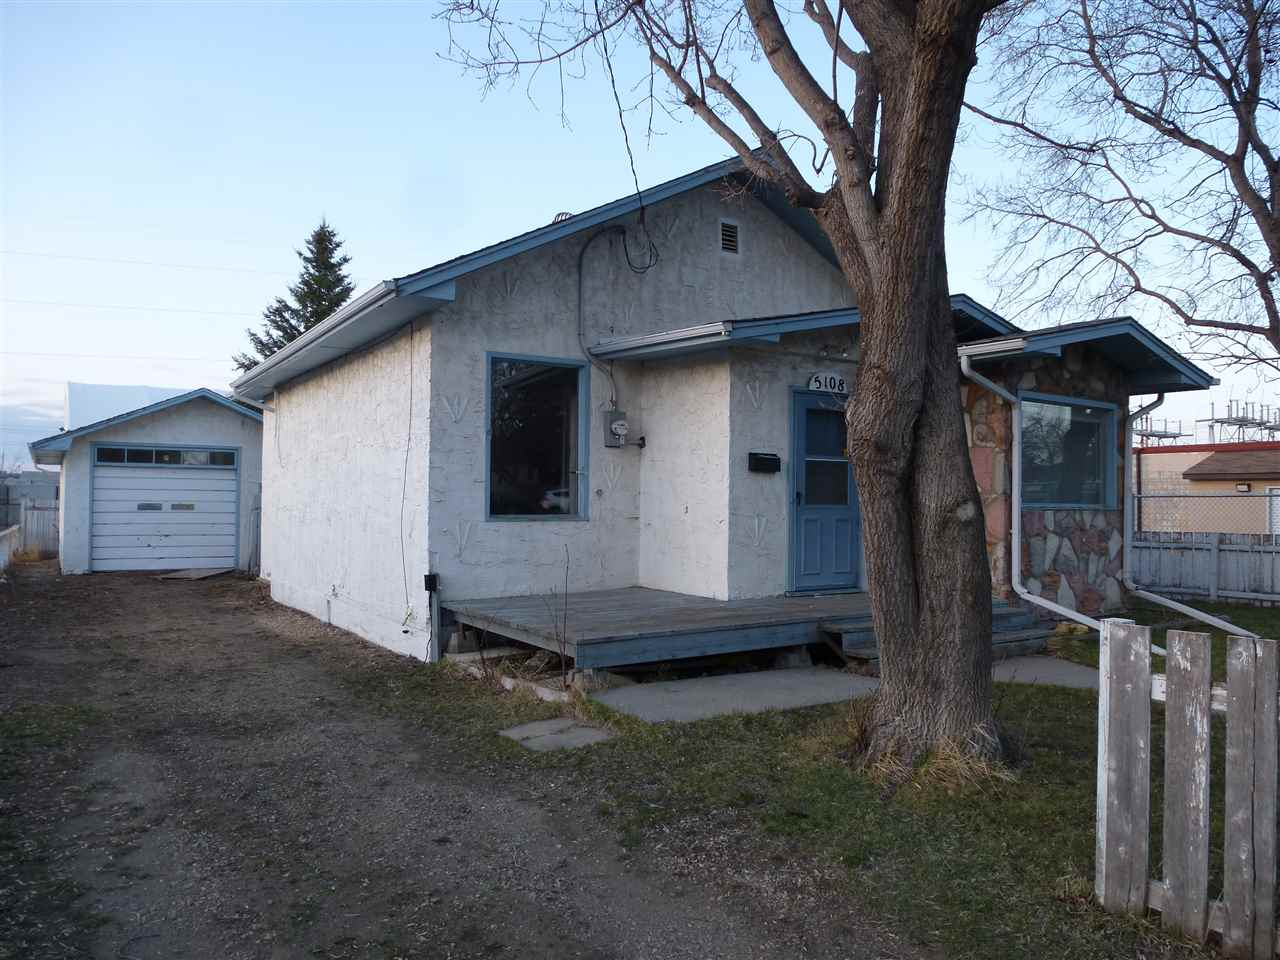 Great Little Home situated on an R4 Lot, Bungalow plan with 2 Bedrooms and a 4pc Bathroom.  Oversized Single Garage.  Good Sized Lot measuring 50'x 110'.